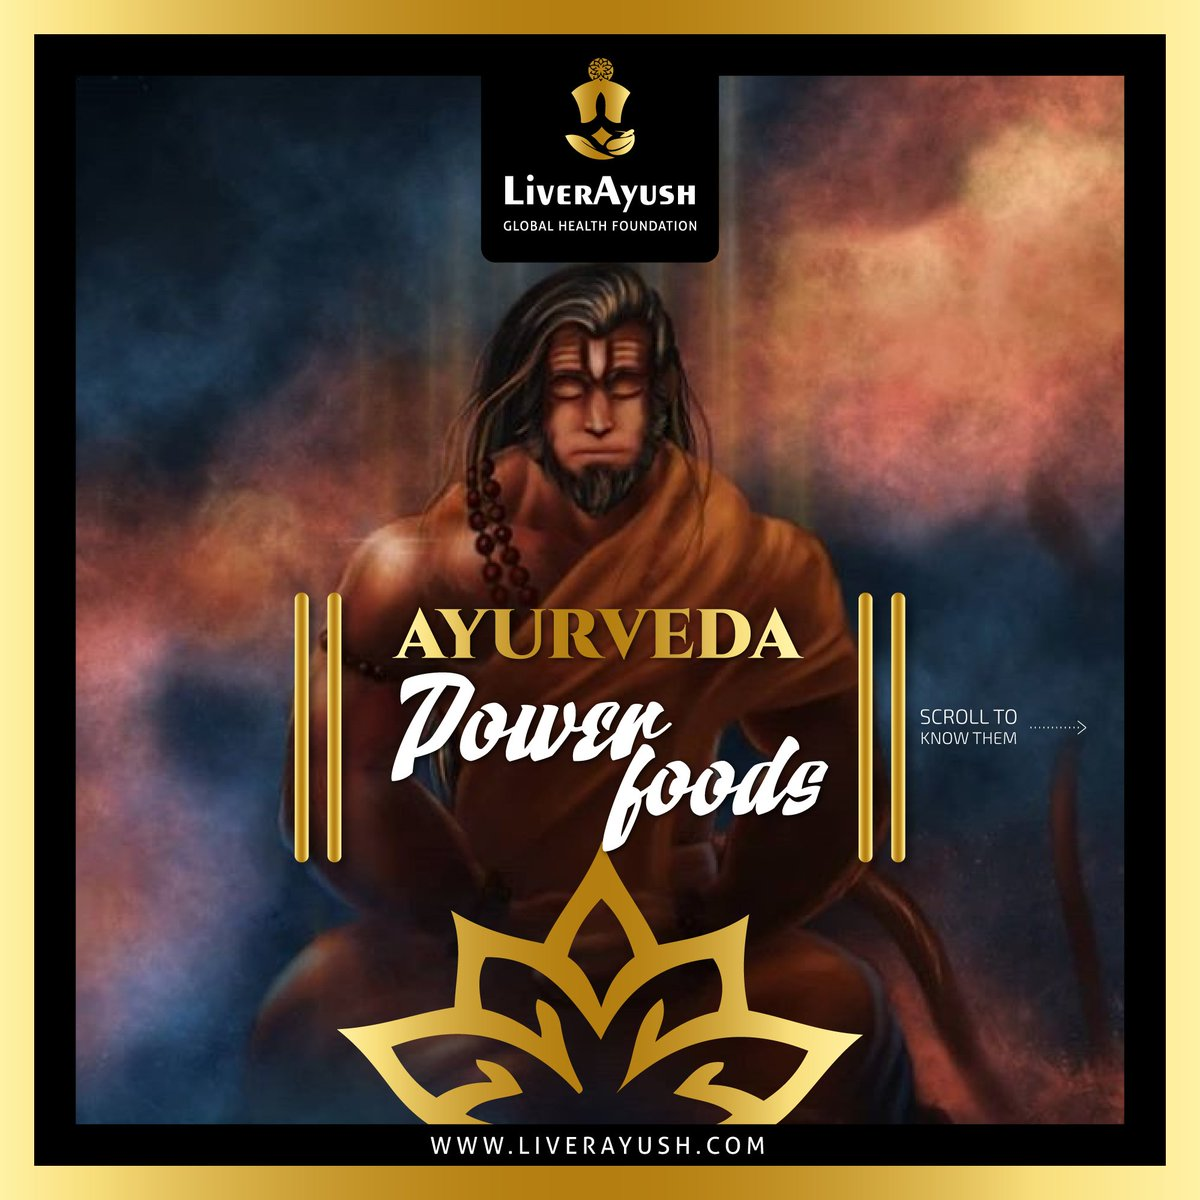 Give your health a boost of immunity and energy with these power foods. #ayurvedic #ayruveda #ayurvedafood #ayurvedicmedicine #ayurvedictreatment #ayurvedalifestyle #ayurvedalife #ayurvedaeveryday #immunity #wellness #naturalfood #ancientayurveda #herbalremedies #powerfoodspic.twitter.com/AucyDxOJ5u